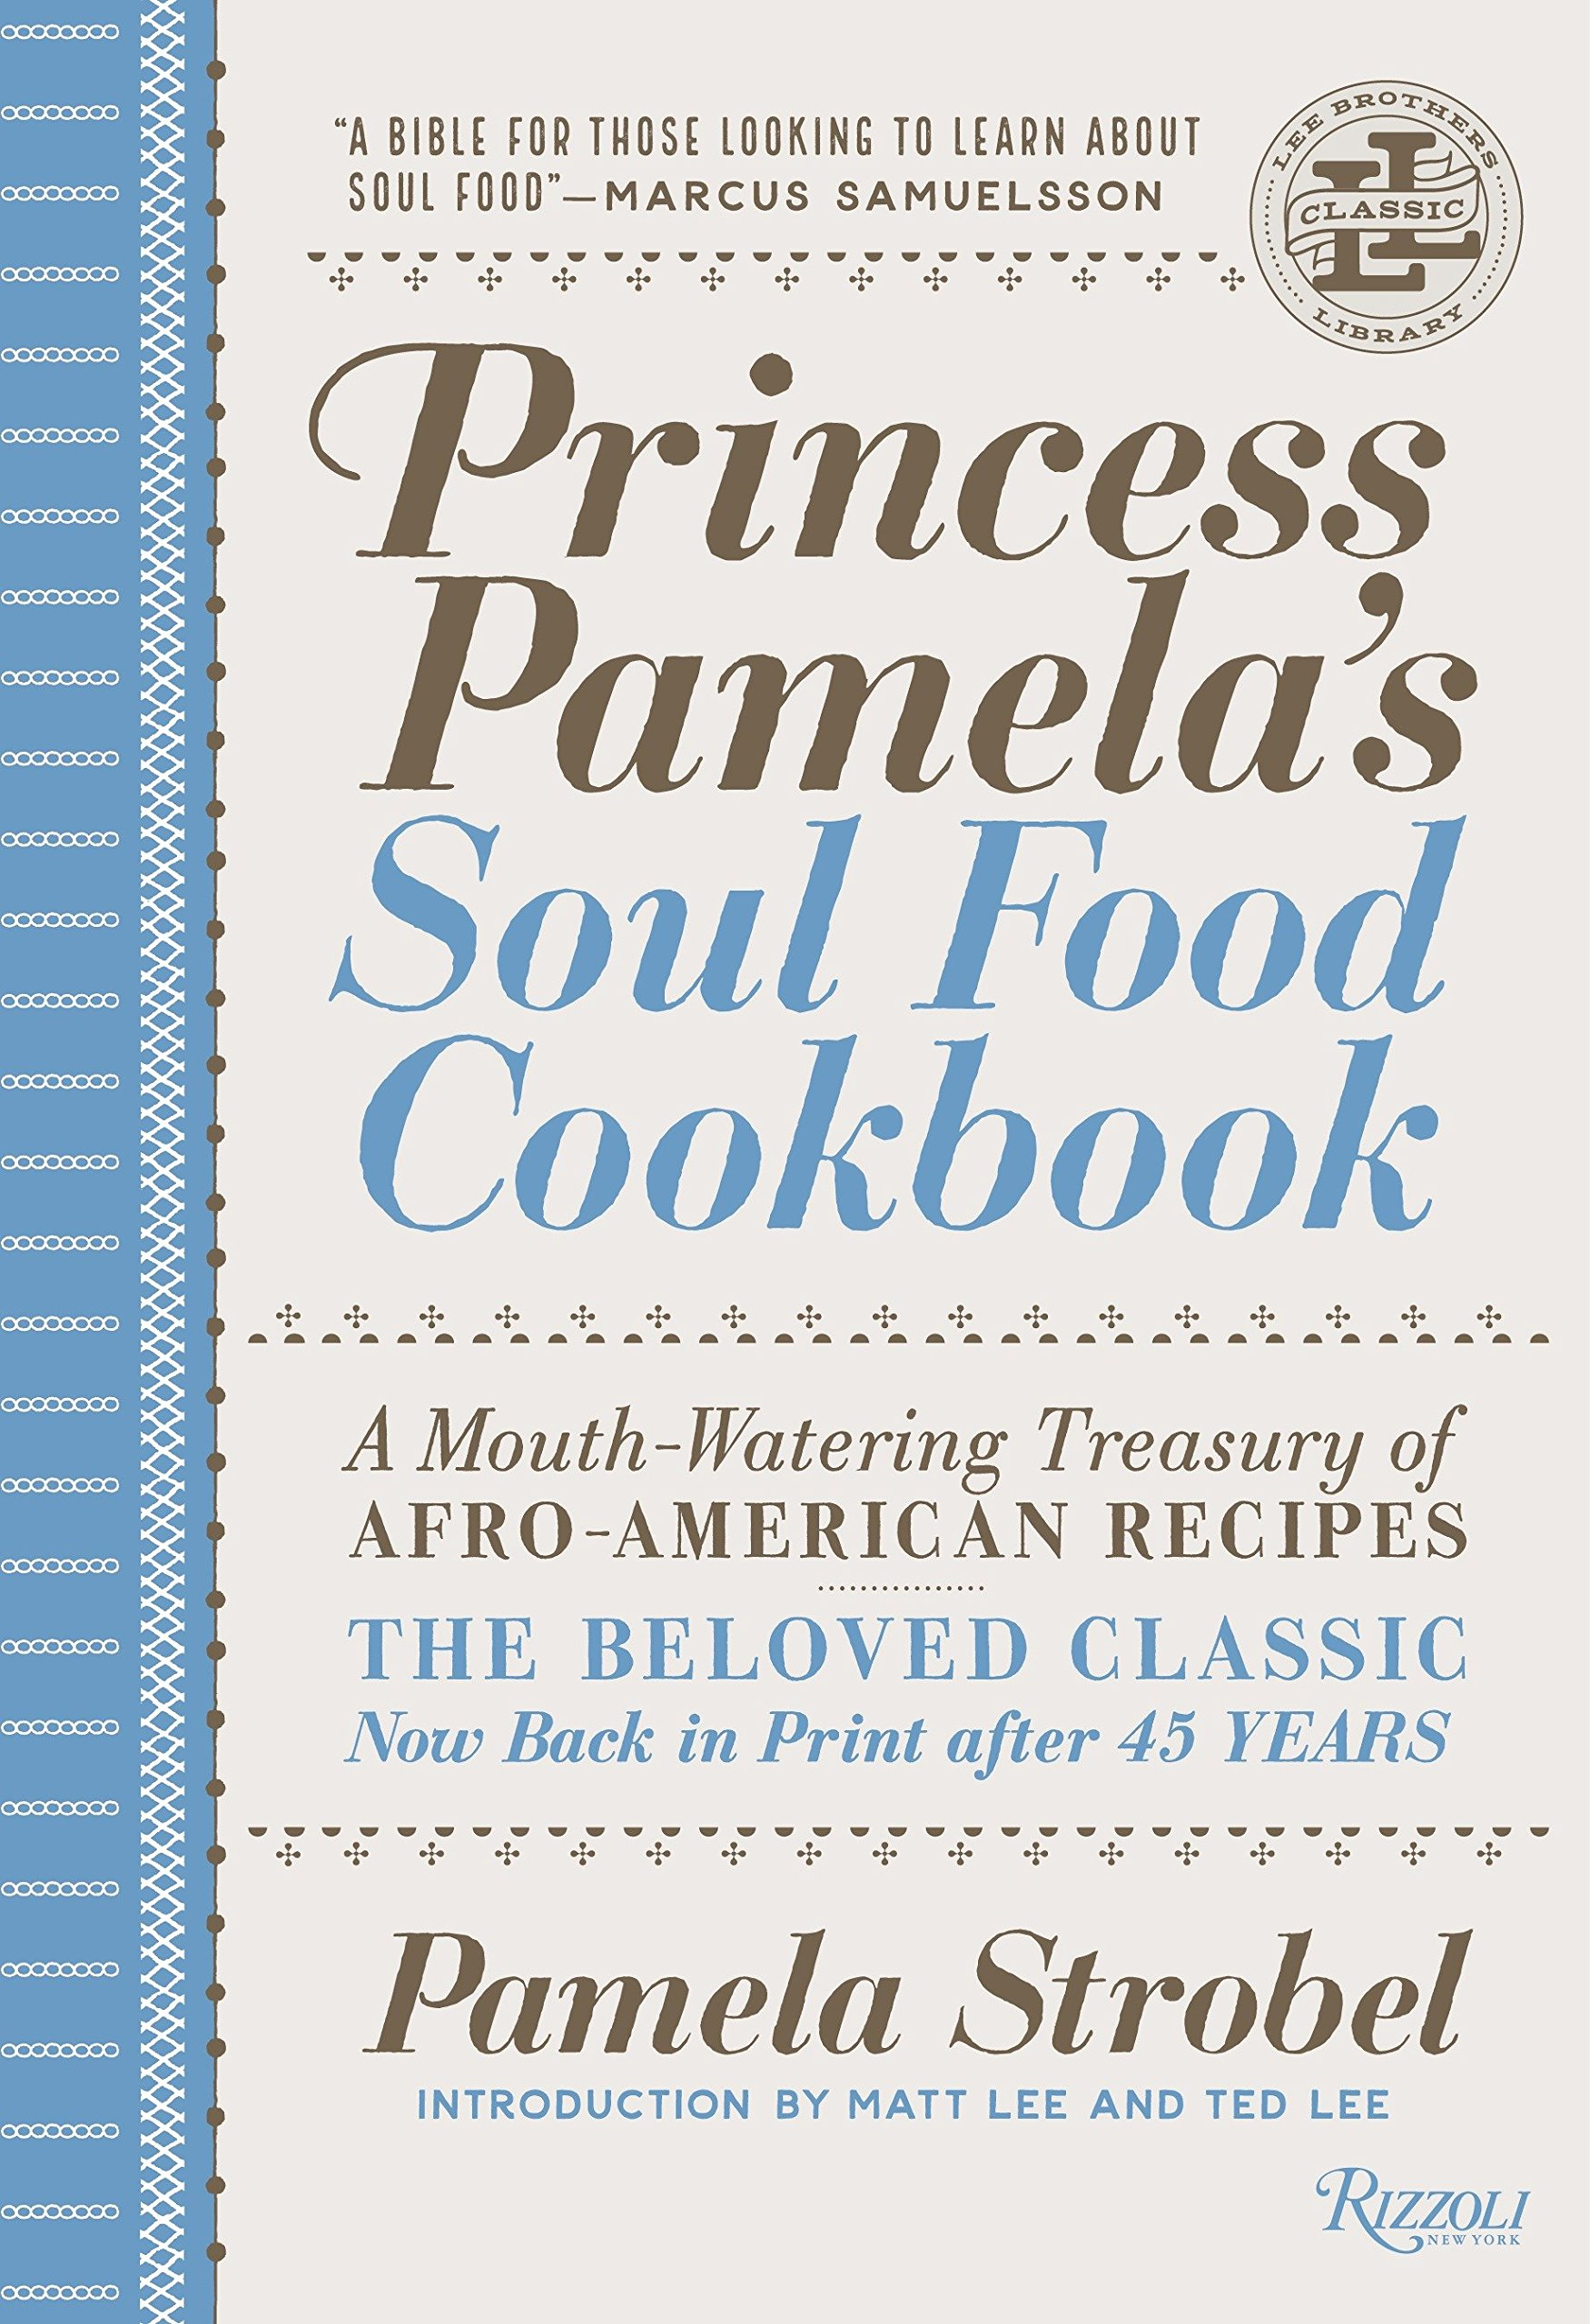 Princess Pamela's Soul Food